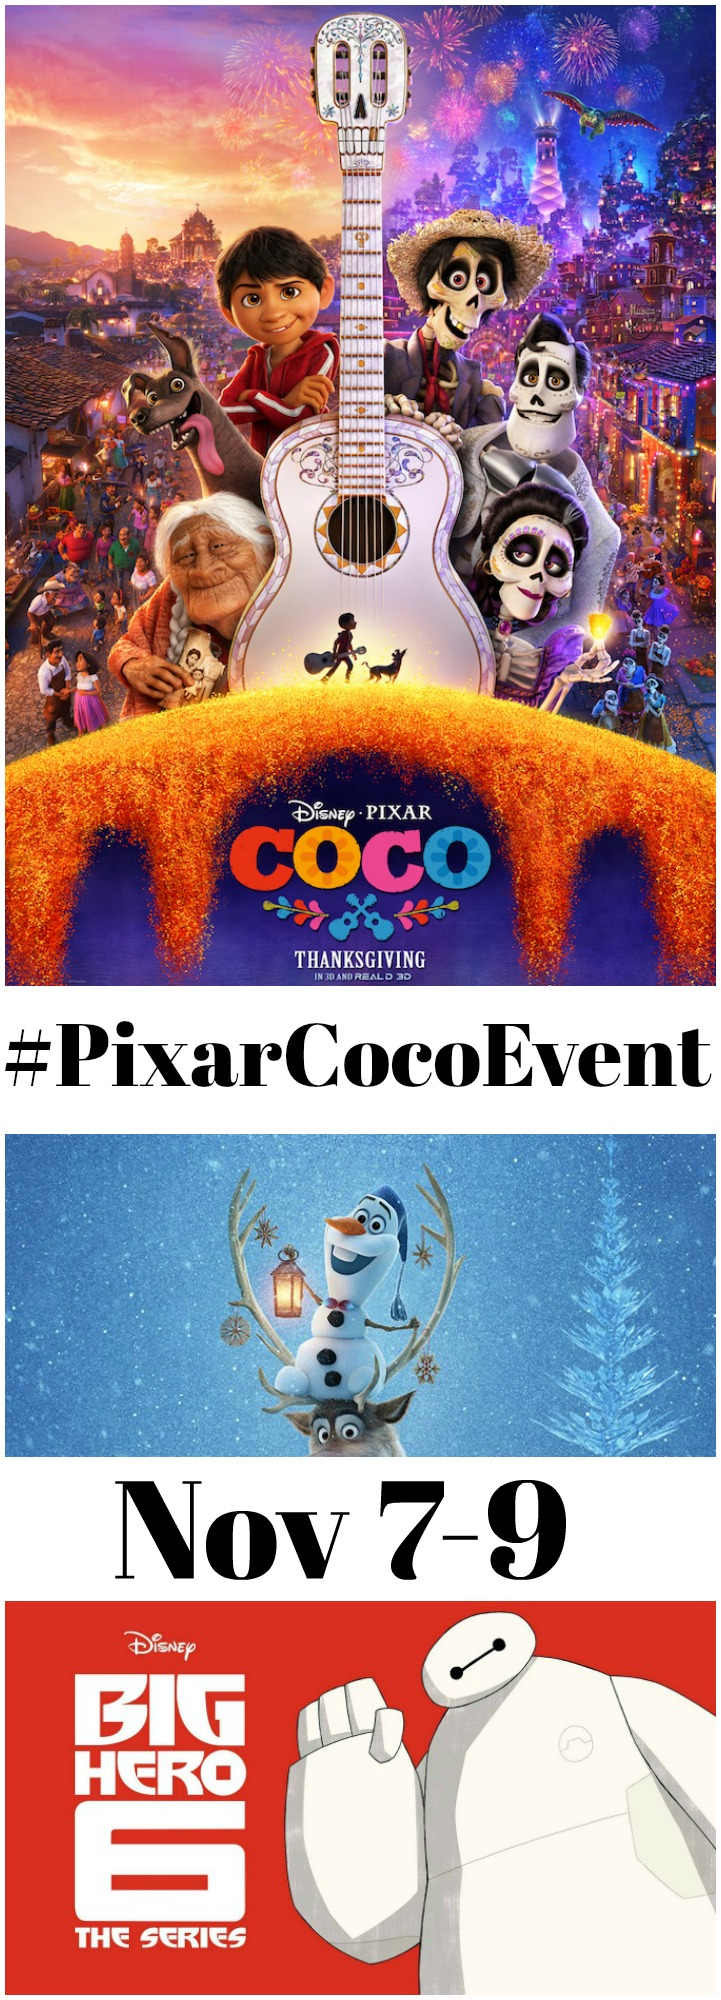 Follow along with me as I head to LA for the Red Carpet premiere of Disney*Pixar's COCO. #DisneyPartner